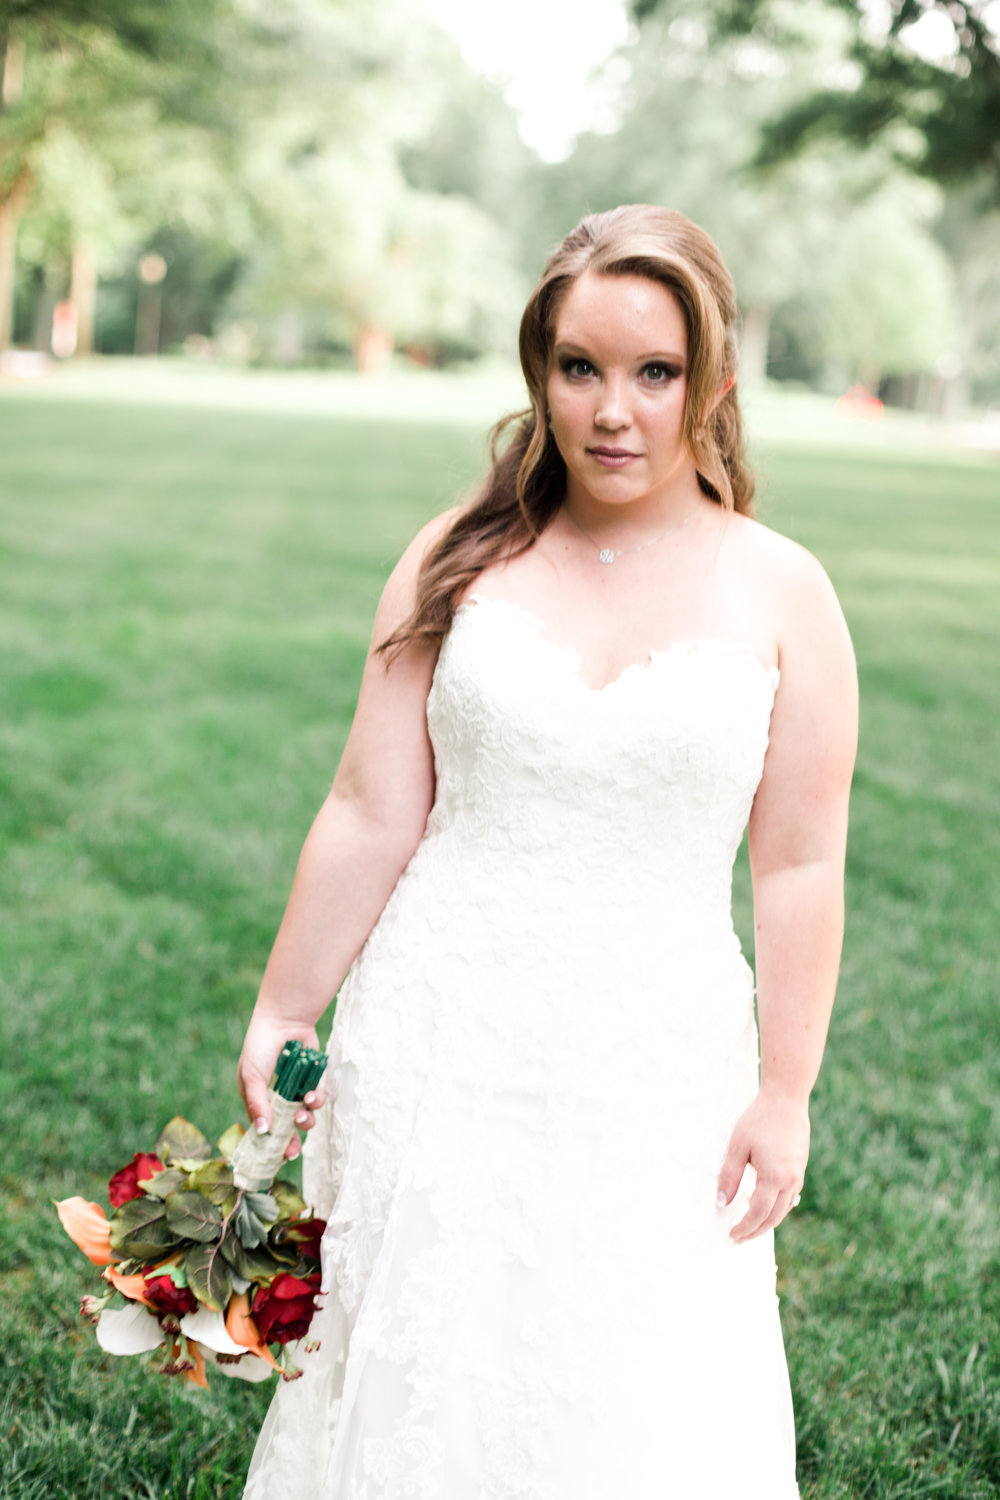 gabbie_bridal_poured_out_photography-44.jpg